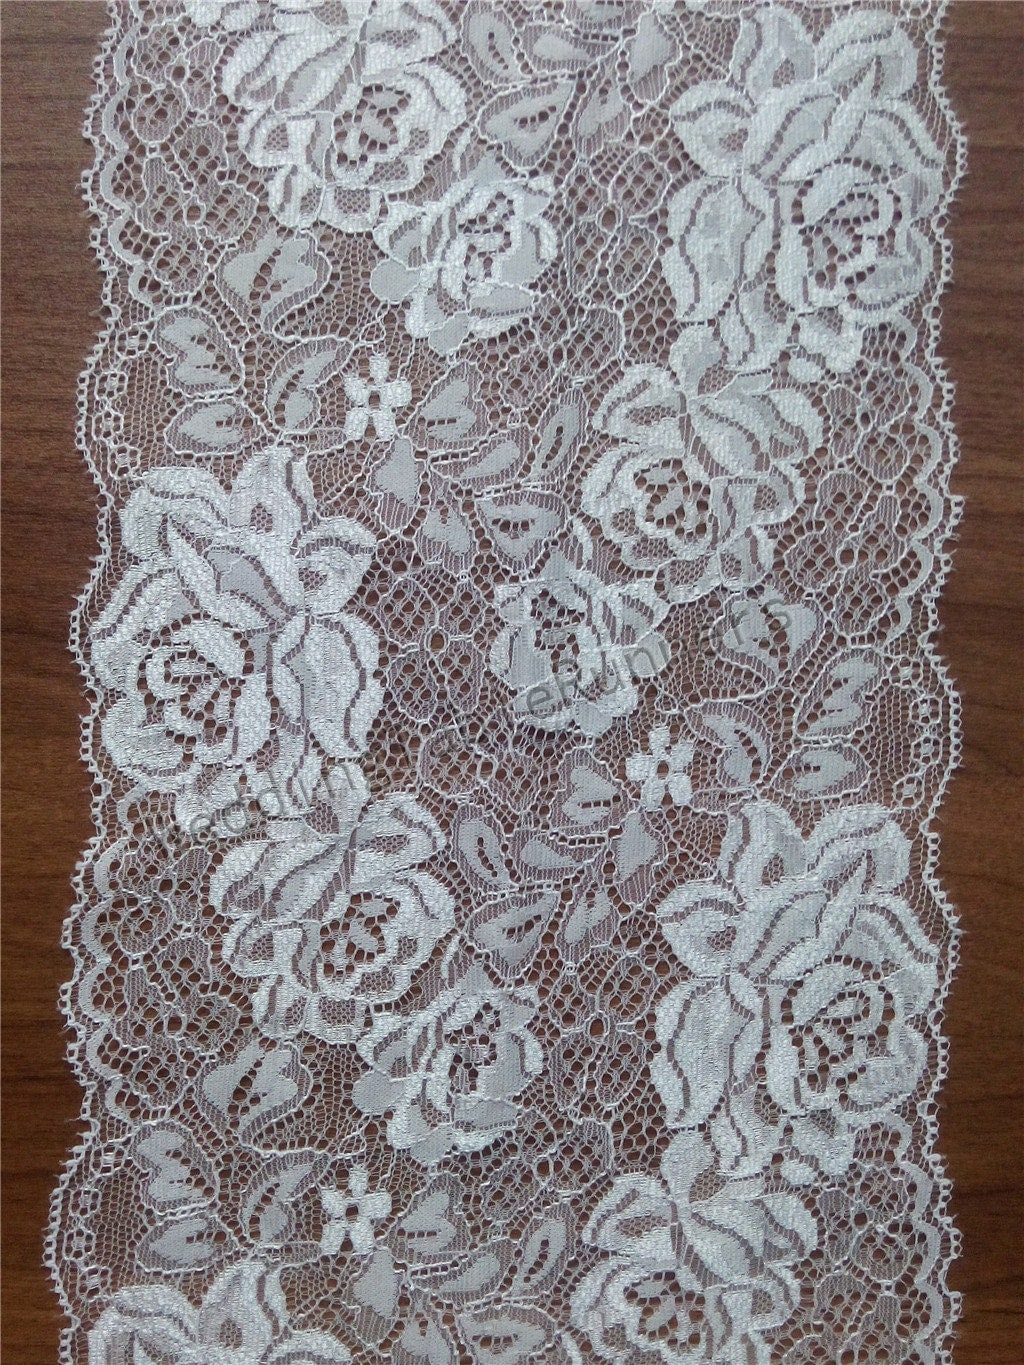 lace table runner 7 wedding table runner wedding